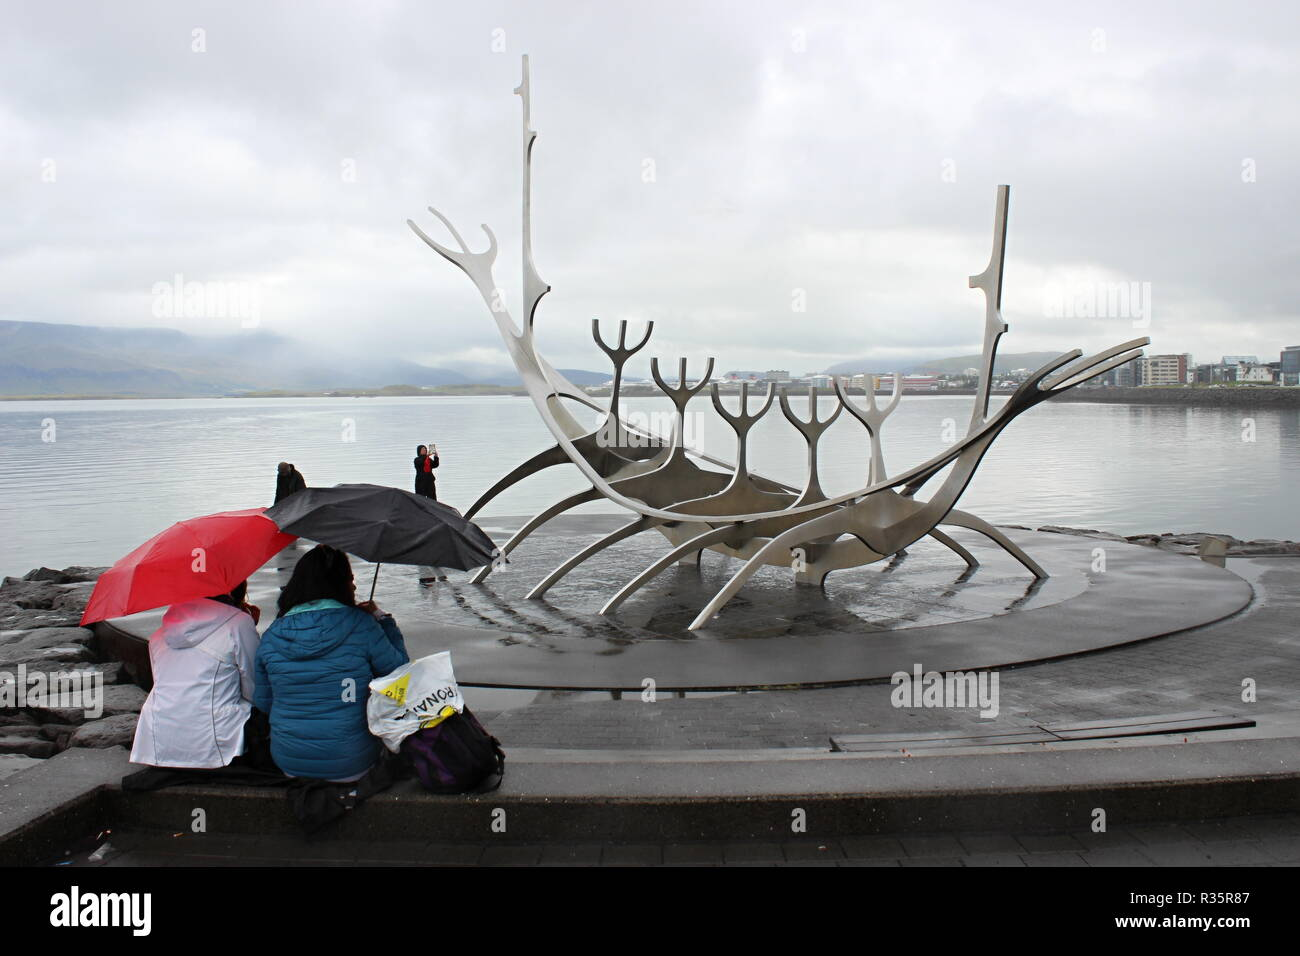 Solfar (Sun Voyager), iconic stainless-steel modern sculpture representing a Viking longboat by Jon Gunnar Arnason, in Iceland's capital Reykjavik pho - Stock Image